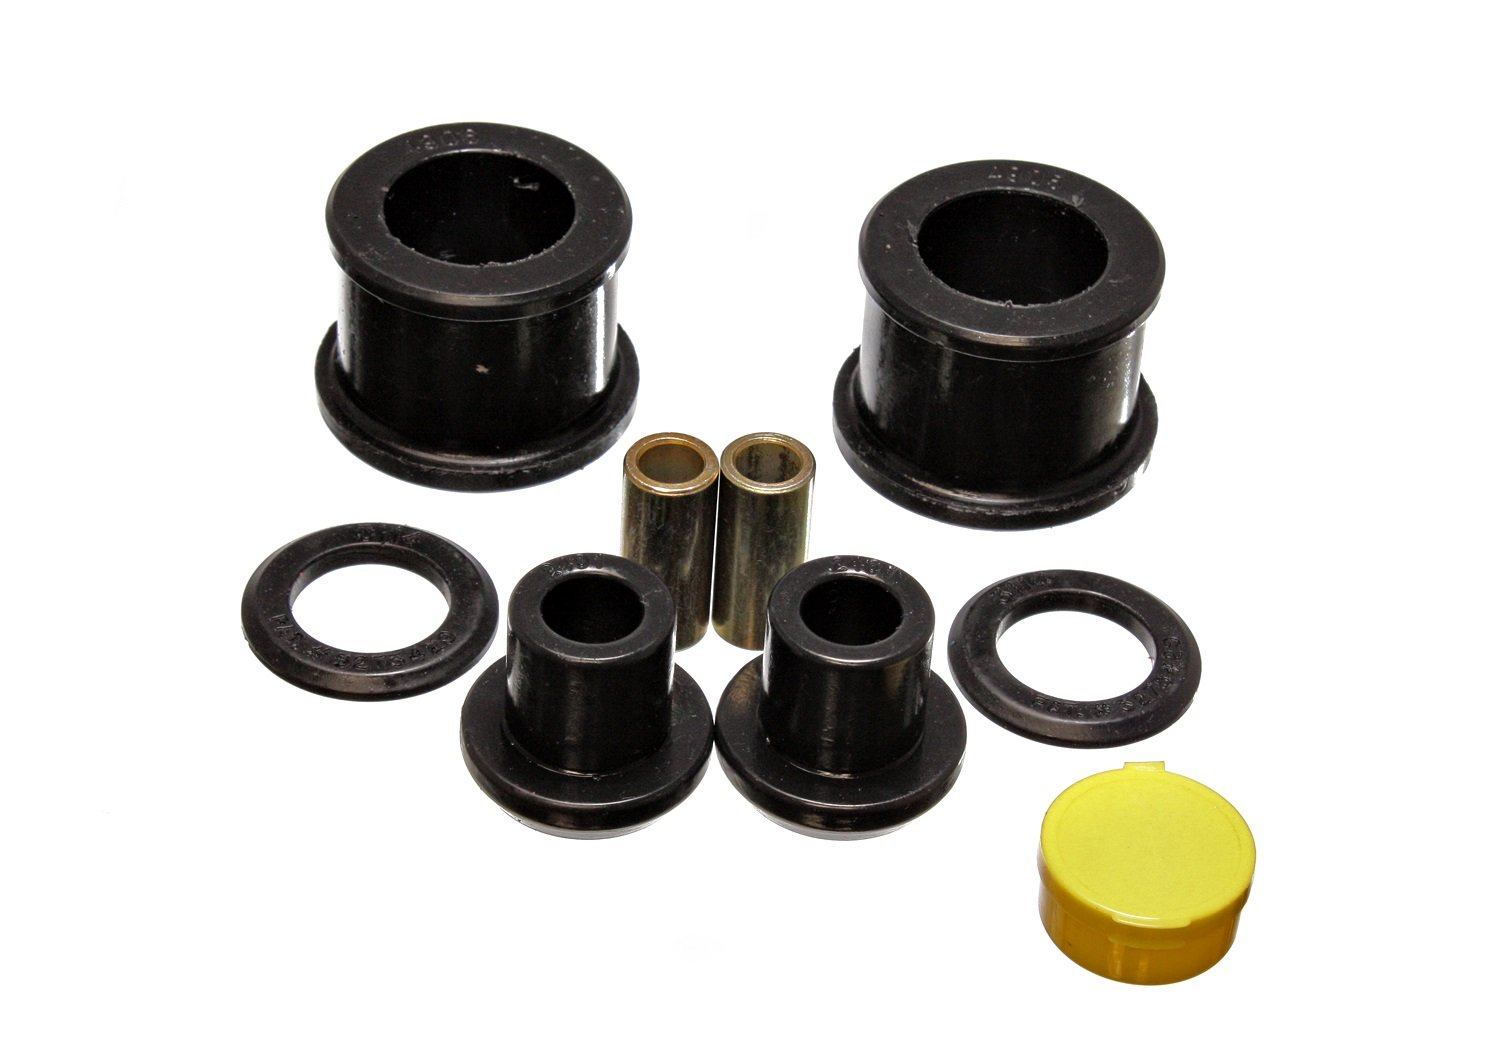 Energy Suspension 7.1118G Rear Diferential Bushing Set by Energy Suspension